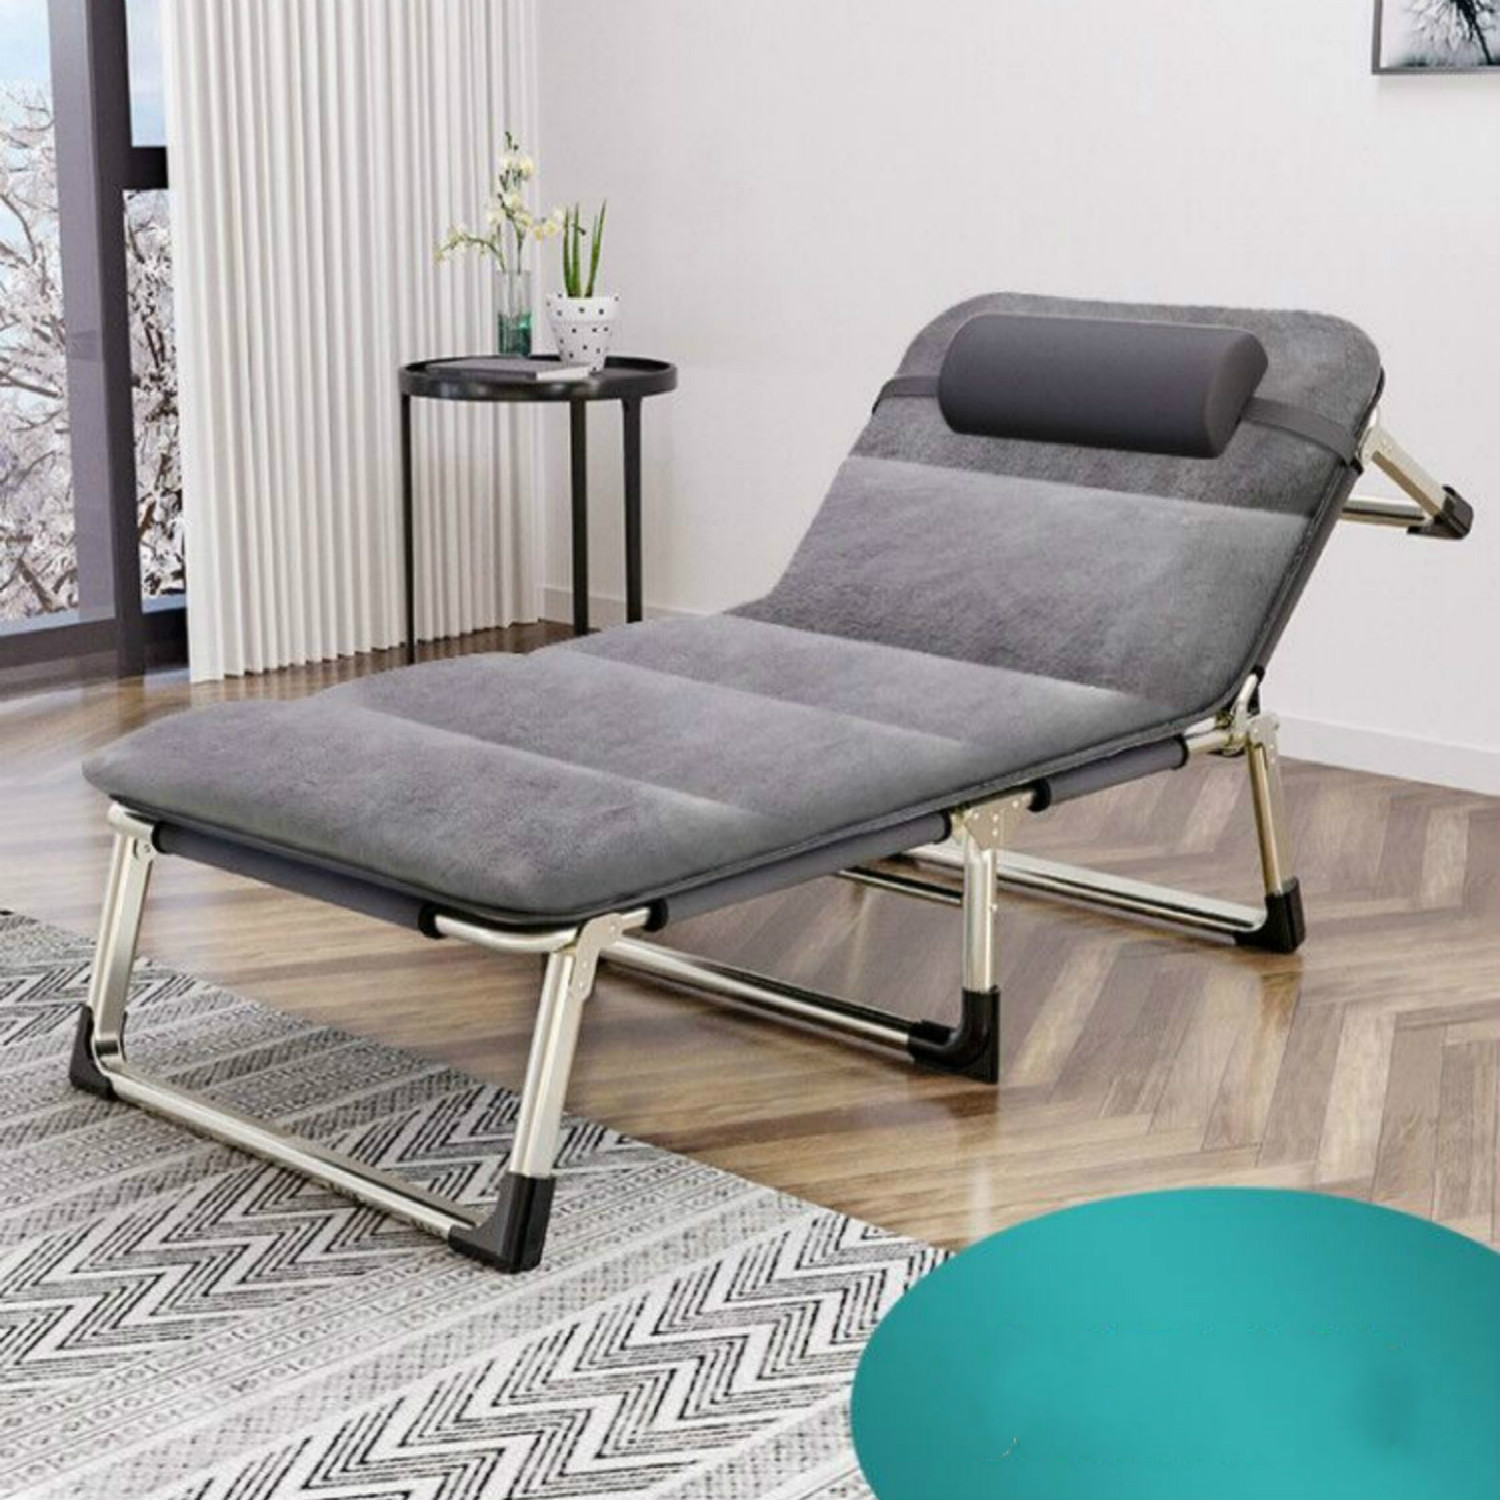 Multifunctional Folding Beds, Single Office, Simple March Escort, Adult Nap Chair, Nap Bed, Portable